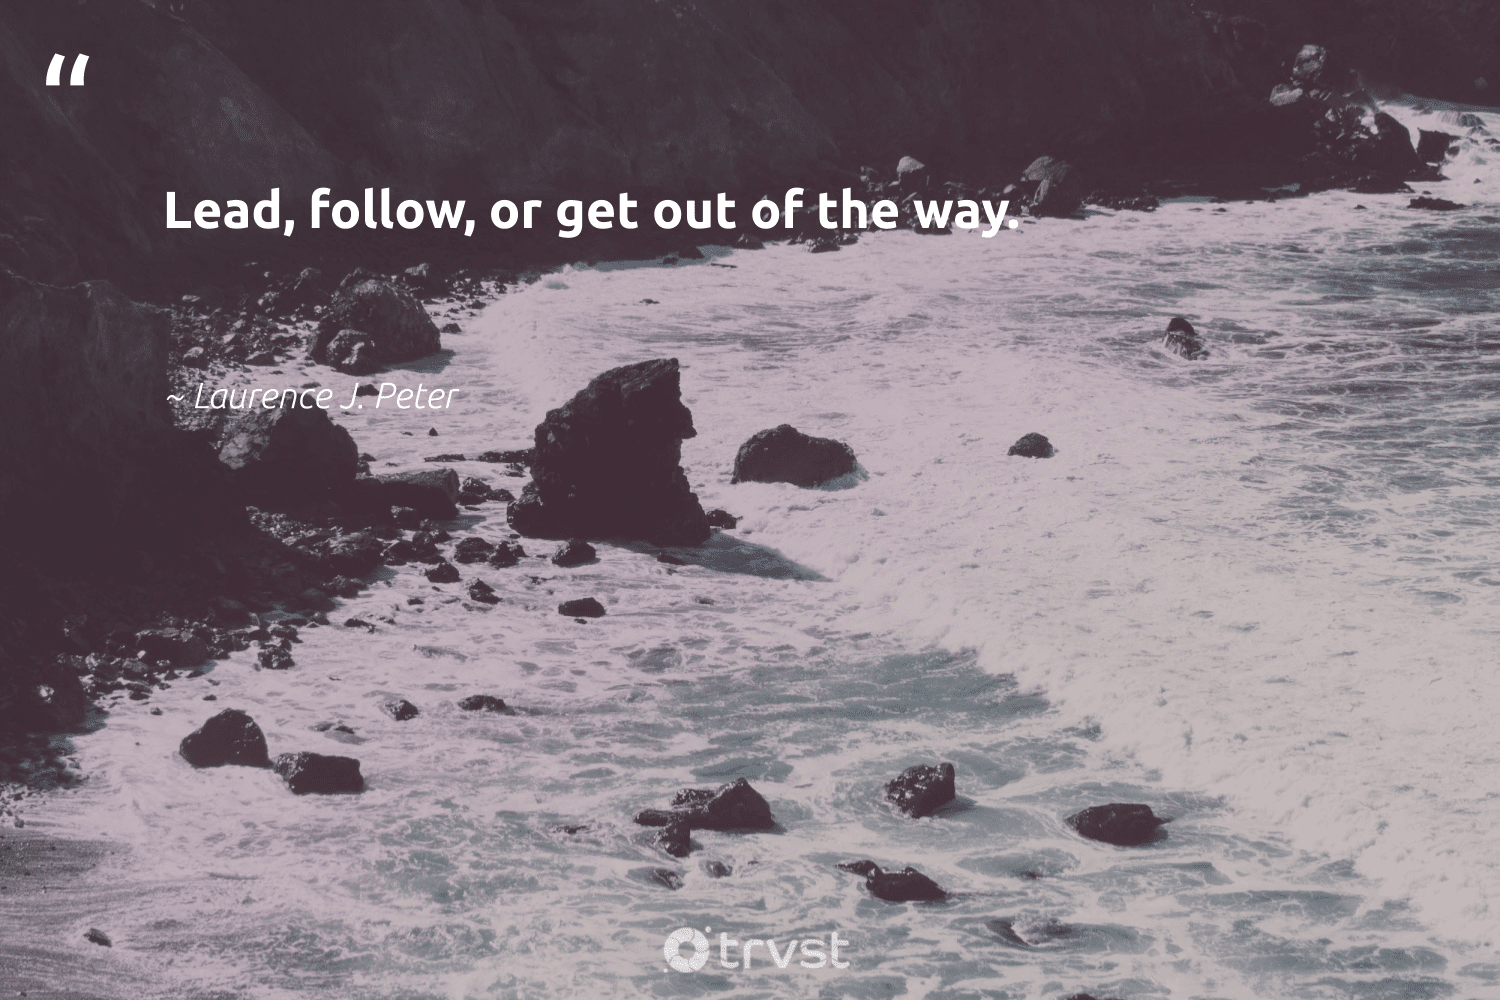 """""""Lead, follow, or get out of the way.""""  - Laurence J. Peter #trvst #quotes #softskills #changetheworld #nevergiveup #bethechange #futureofwork #impact #begreat #dogood #dotherightthing #ecoconscious"""